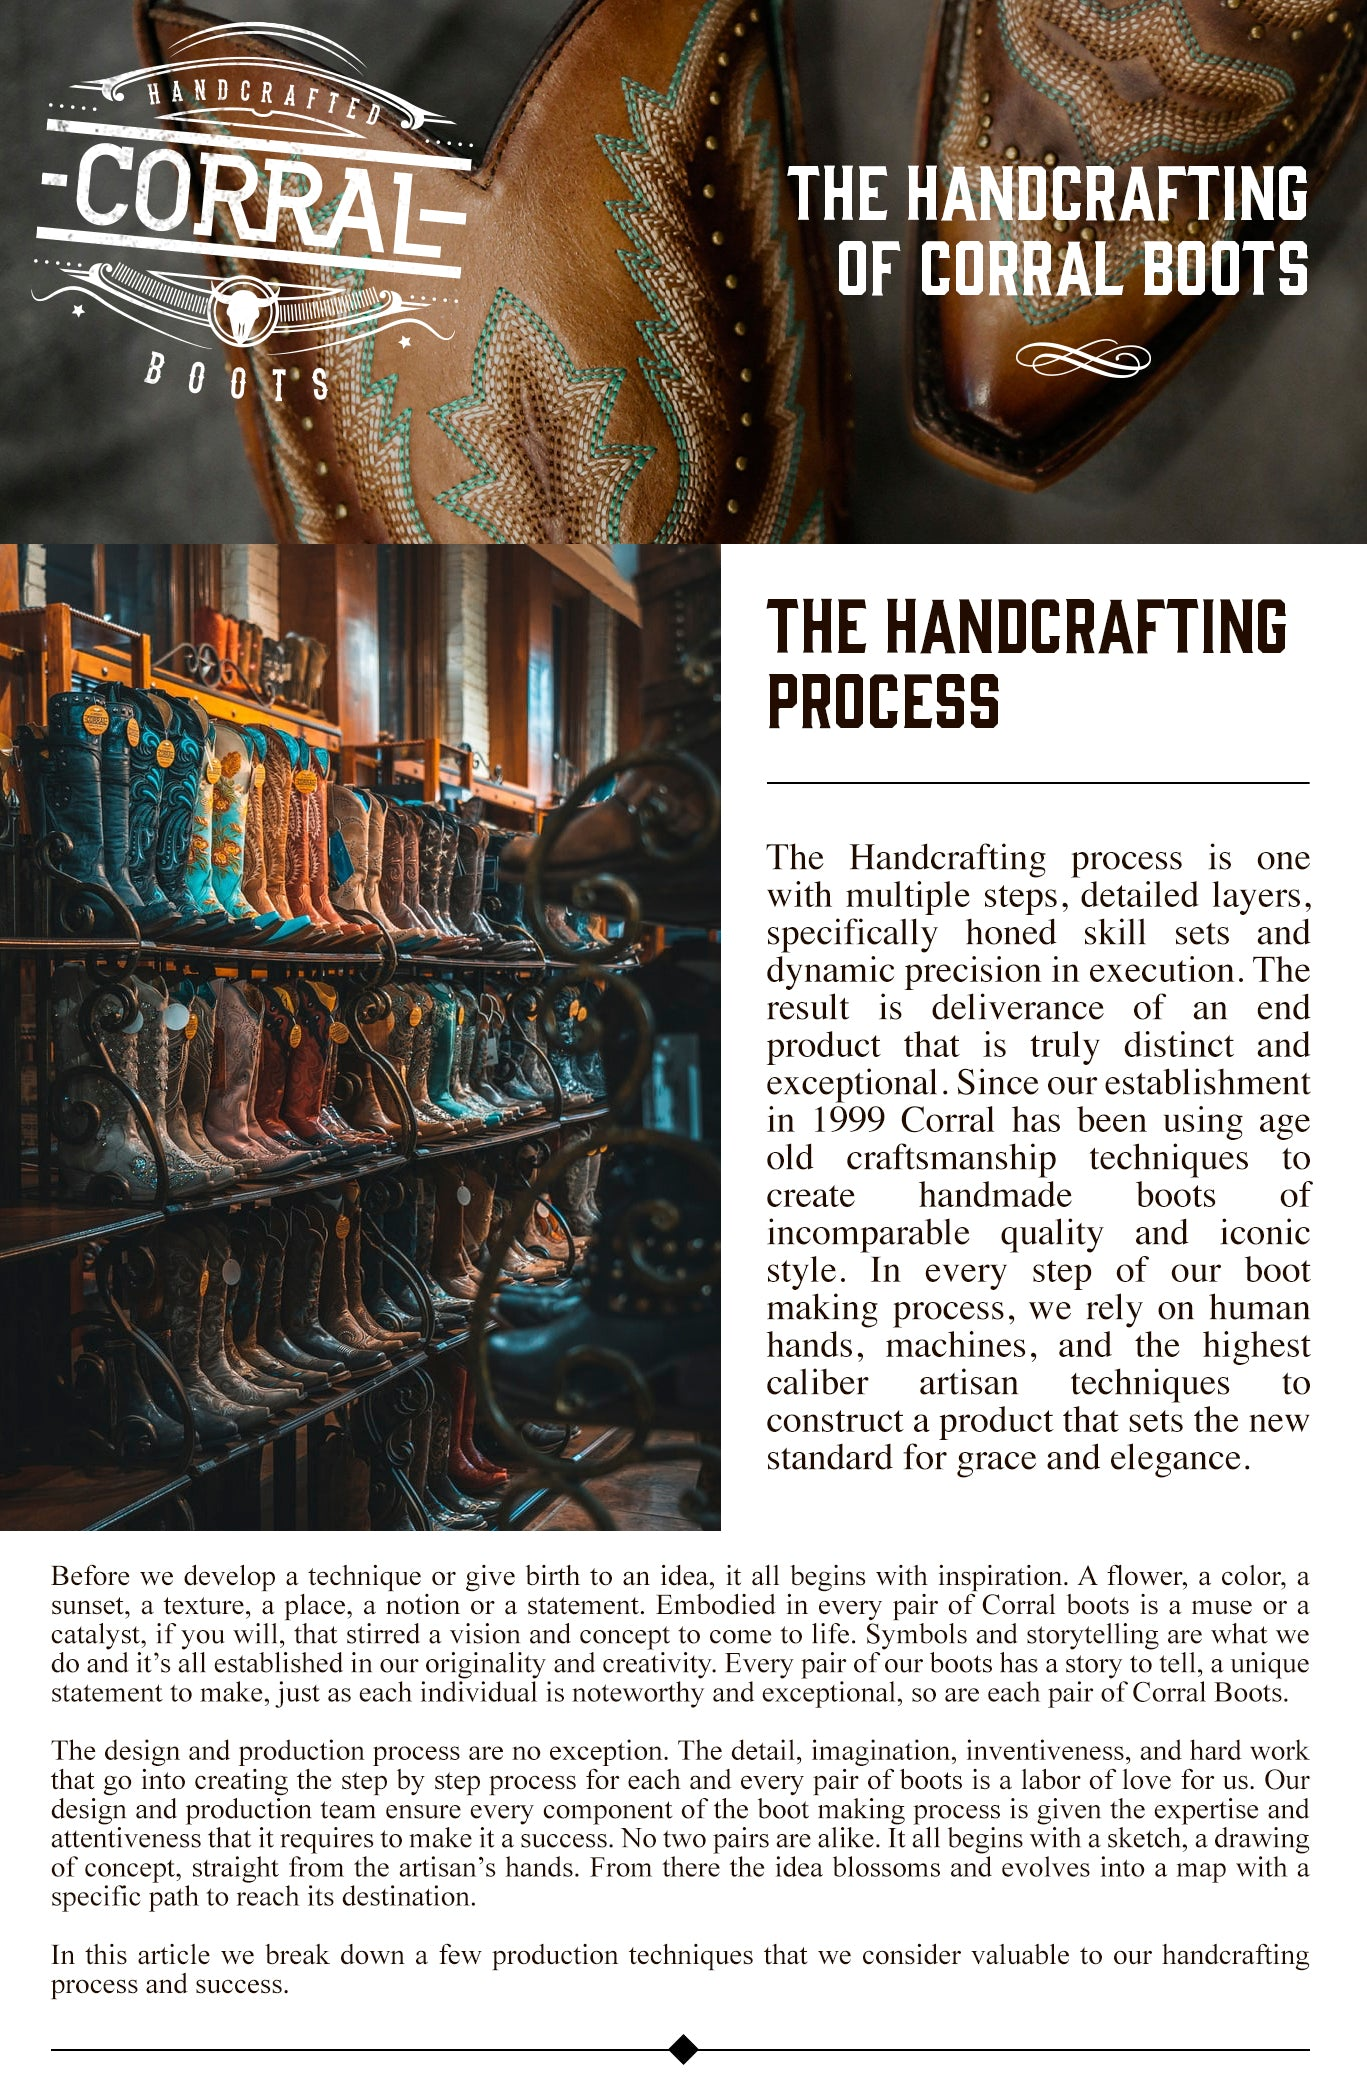 The Handcrafting process